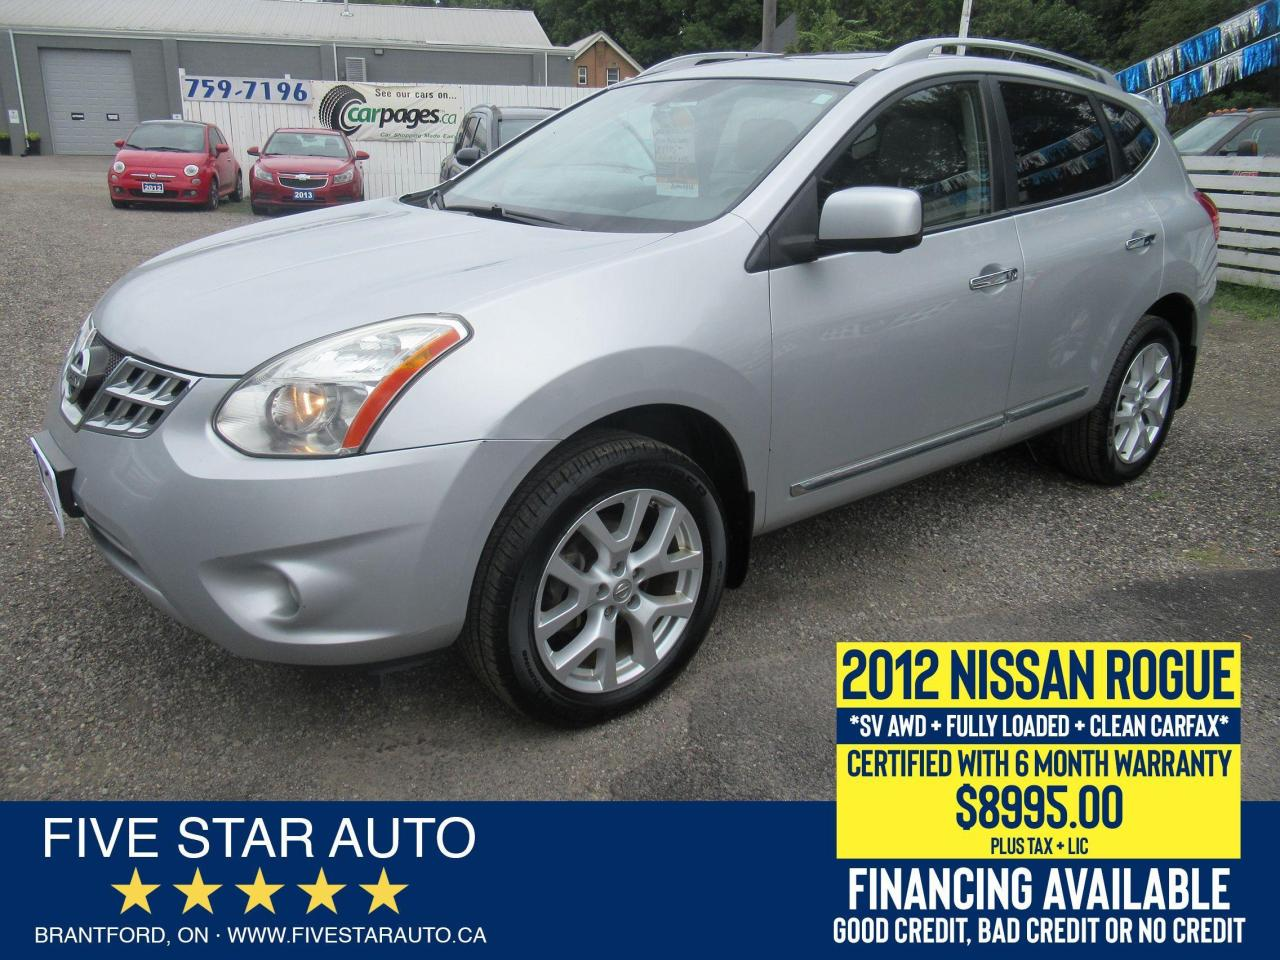 2012 Nissan Rogue SL AWD *Clean Carfax* Certified w/ 6 Month Wrnty